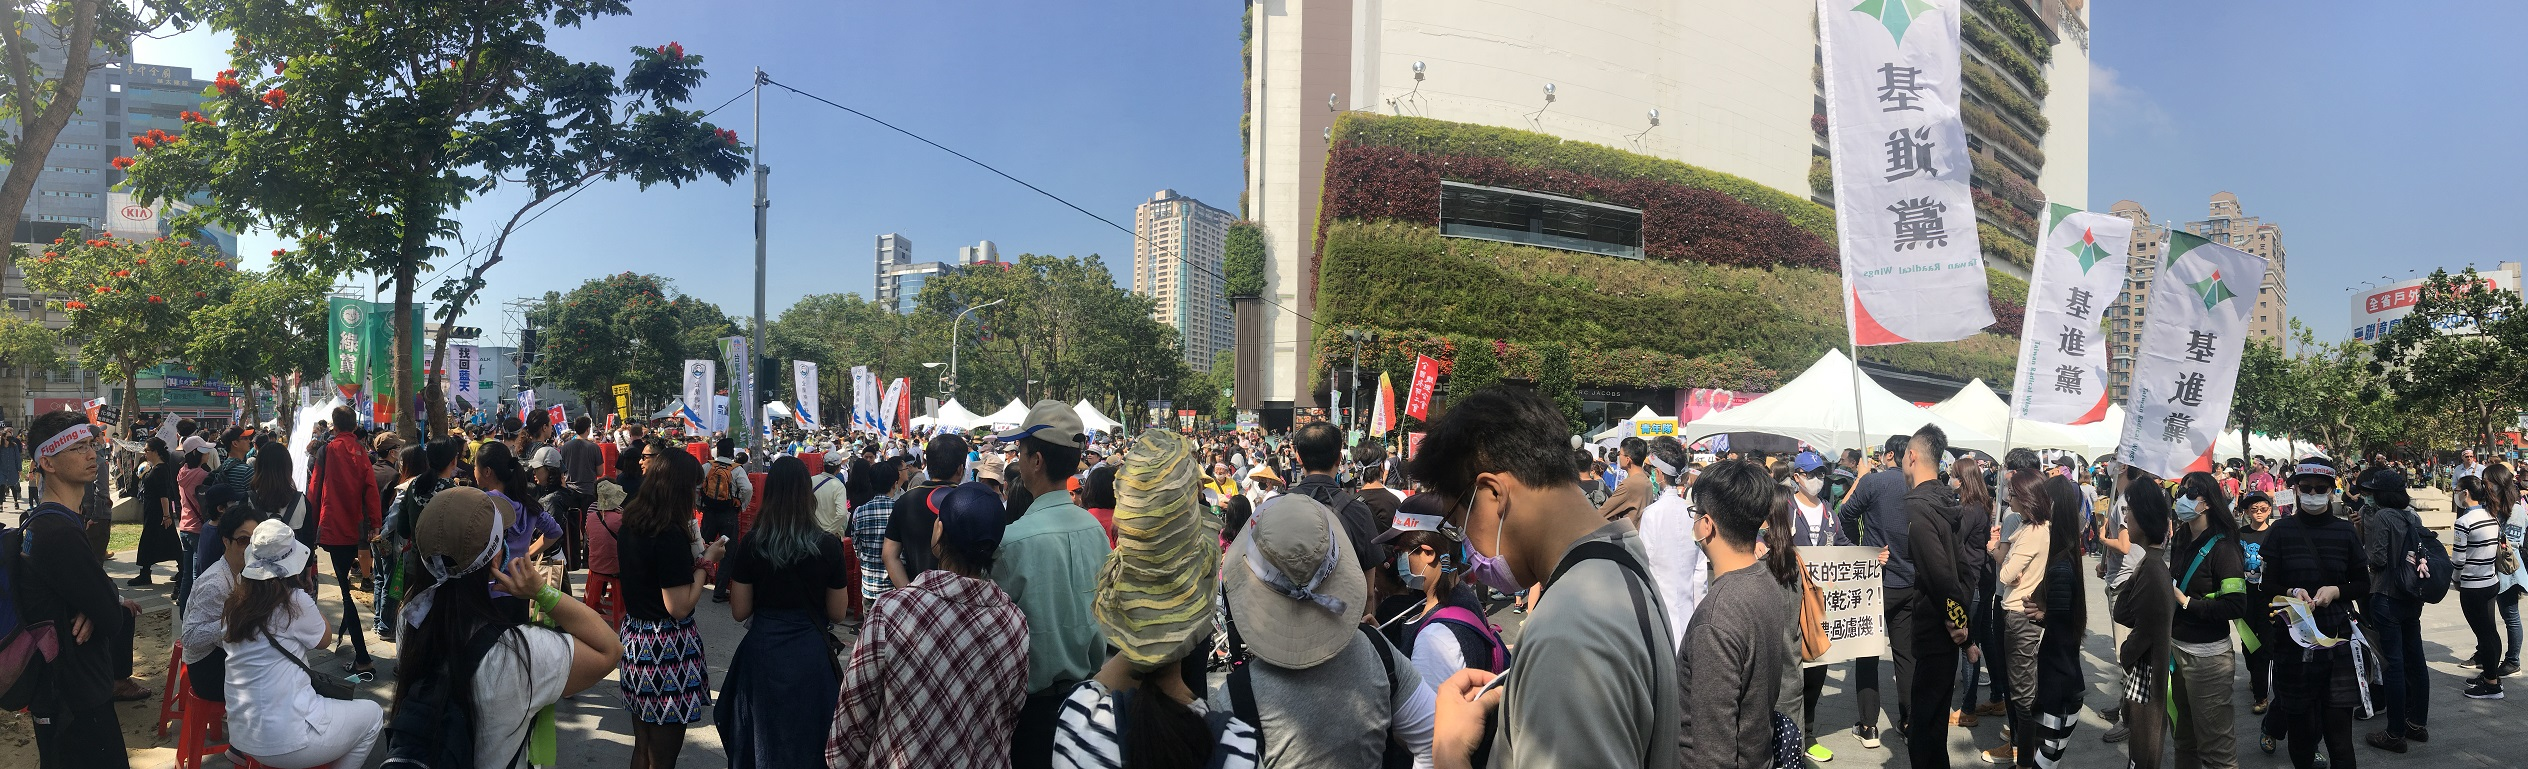 Panoramic view of protesters in rallying against pollution in Kaohsiung